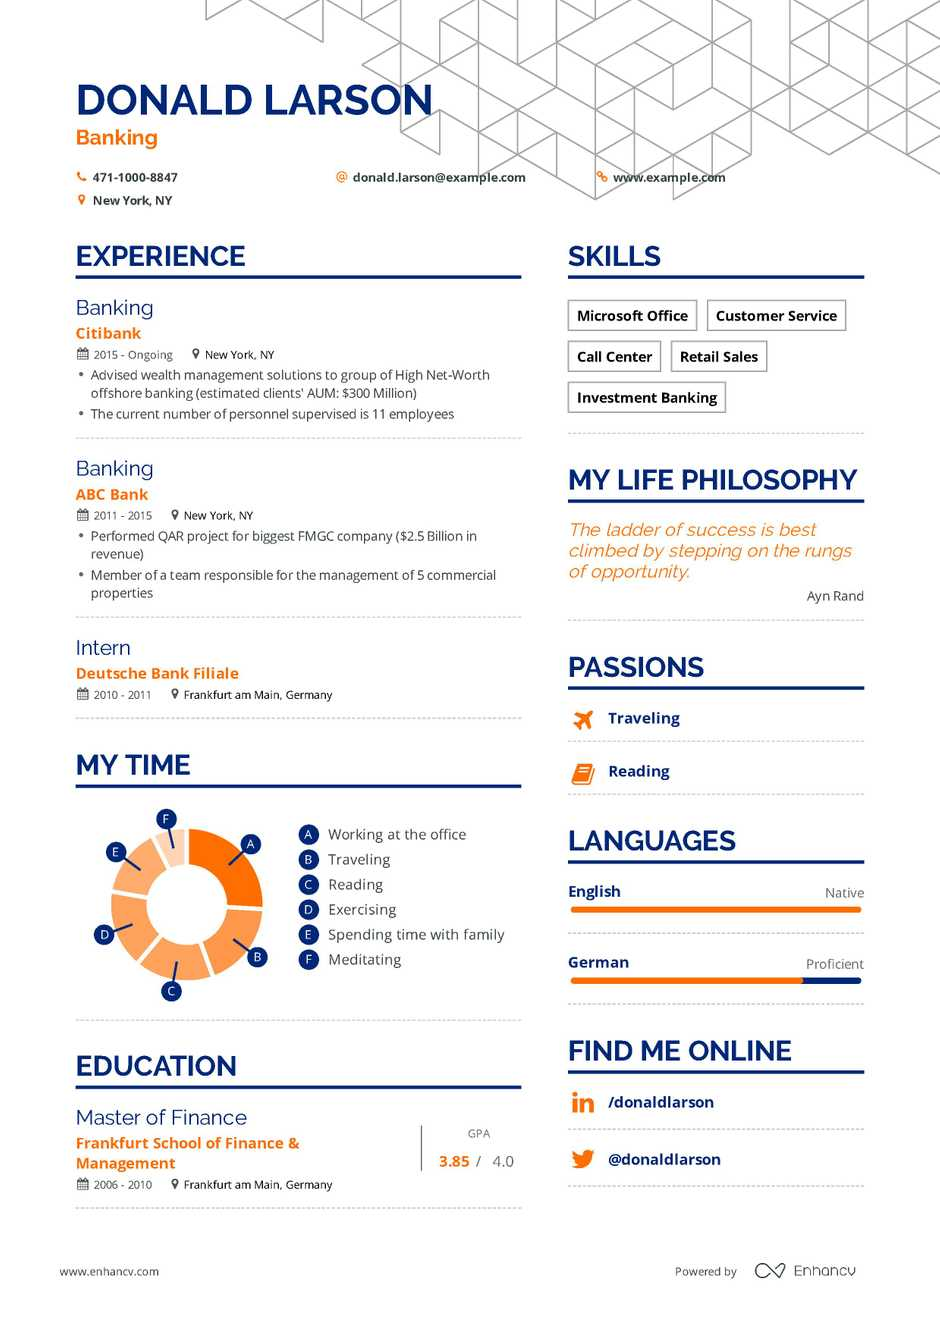 200+ Free Professional Resume Examples and Samples for 2019